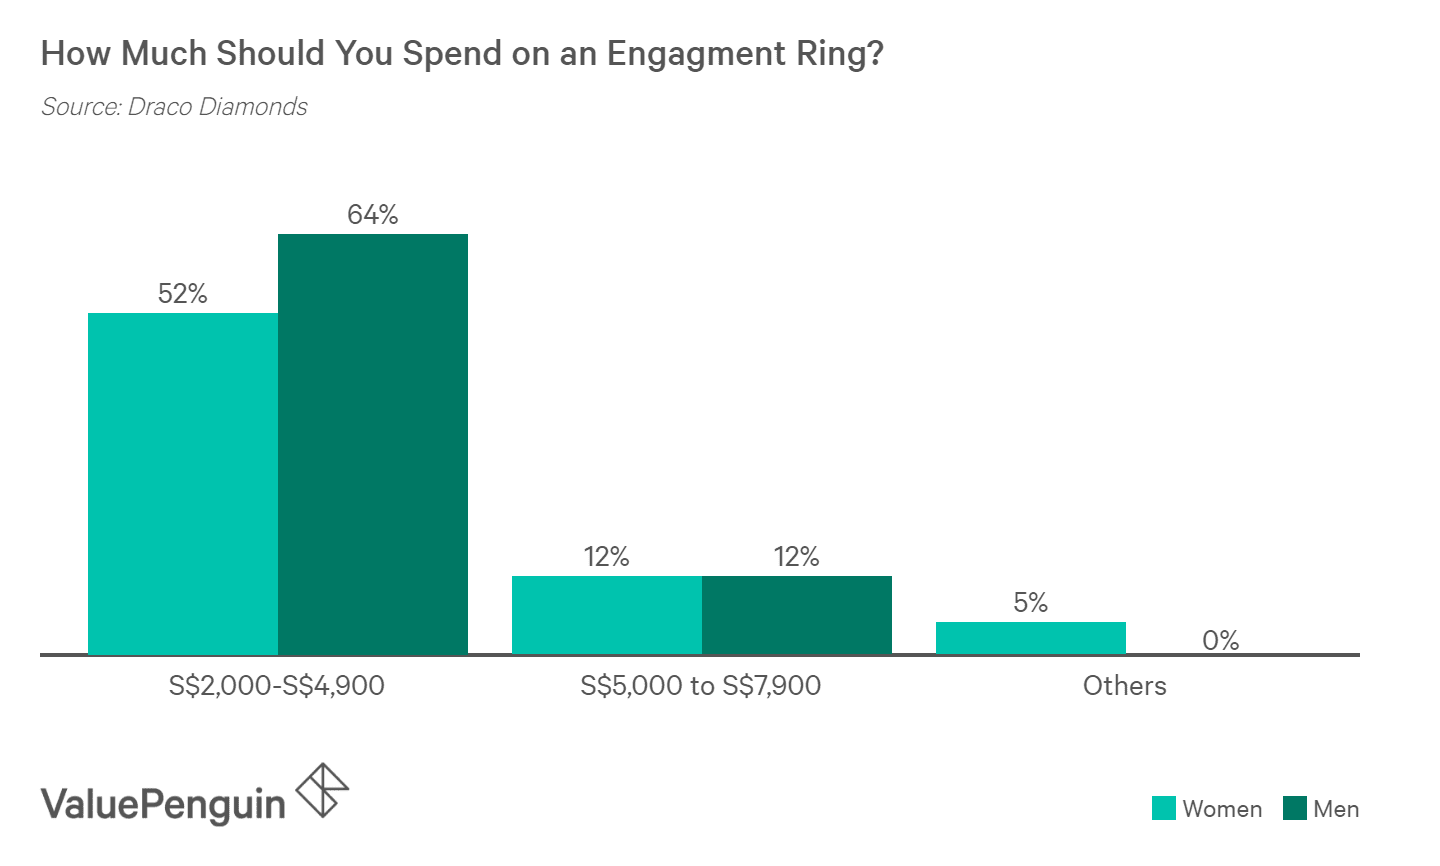 Women prefer to spend less on engagement rings than men